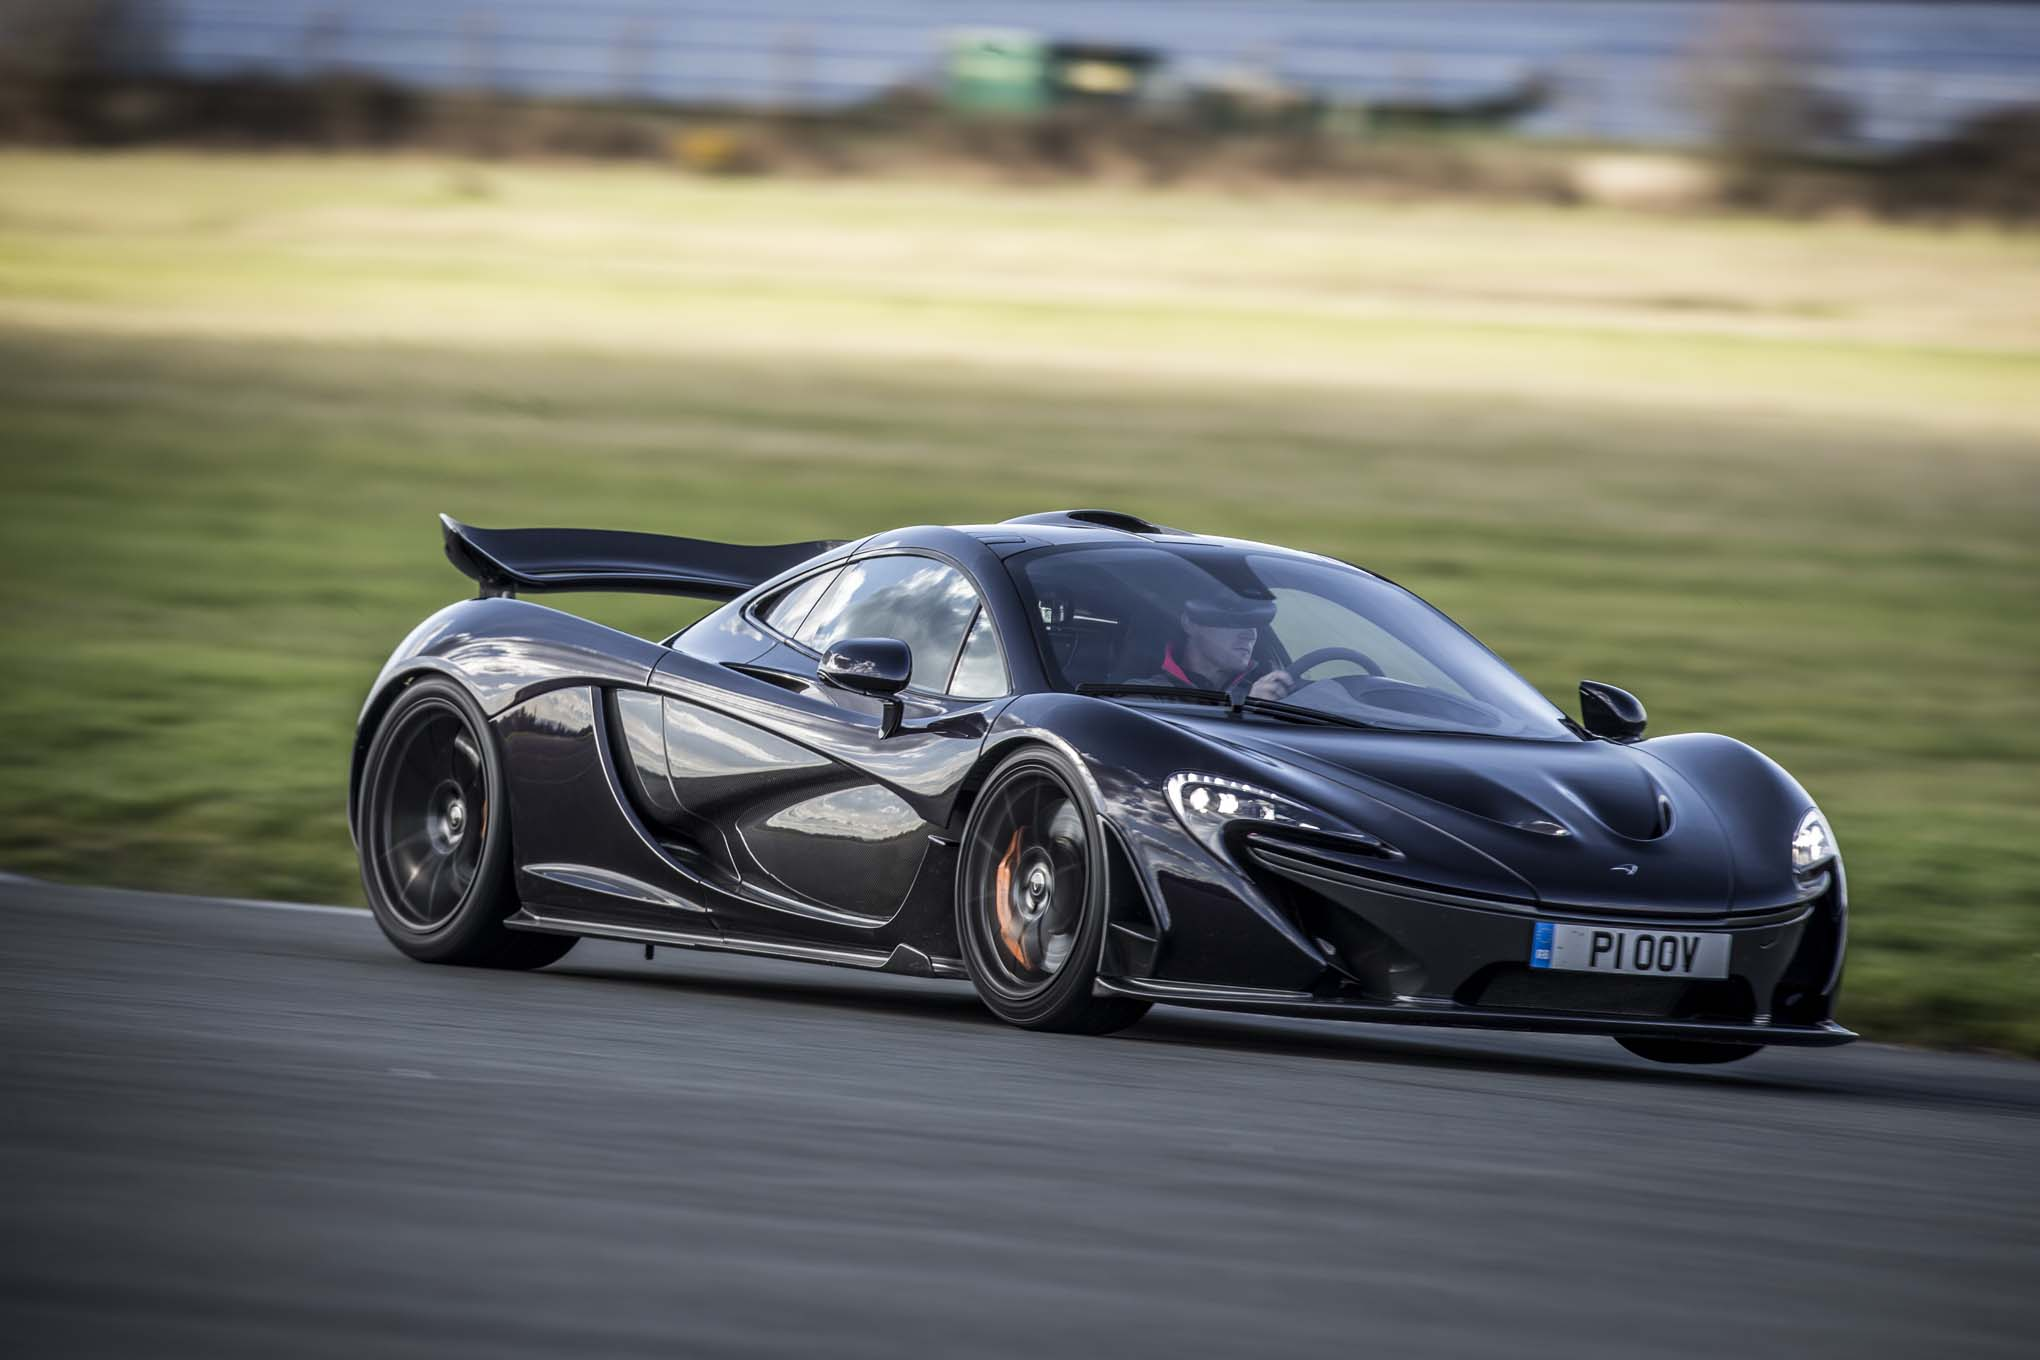 https://st.automobilemag.com/uploads/sites/11/2014/03/2014-Mclaren-P1-black-front-three-quarter-in-motion-10.jpg